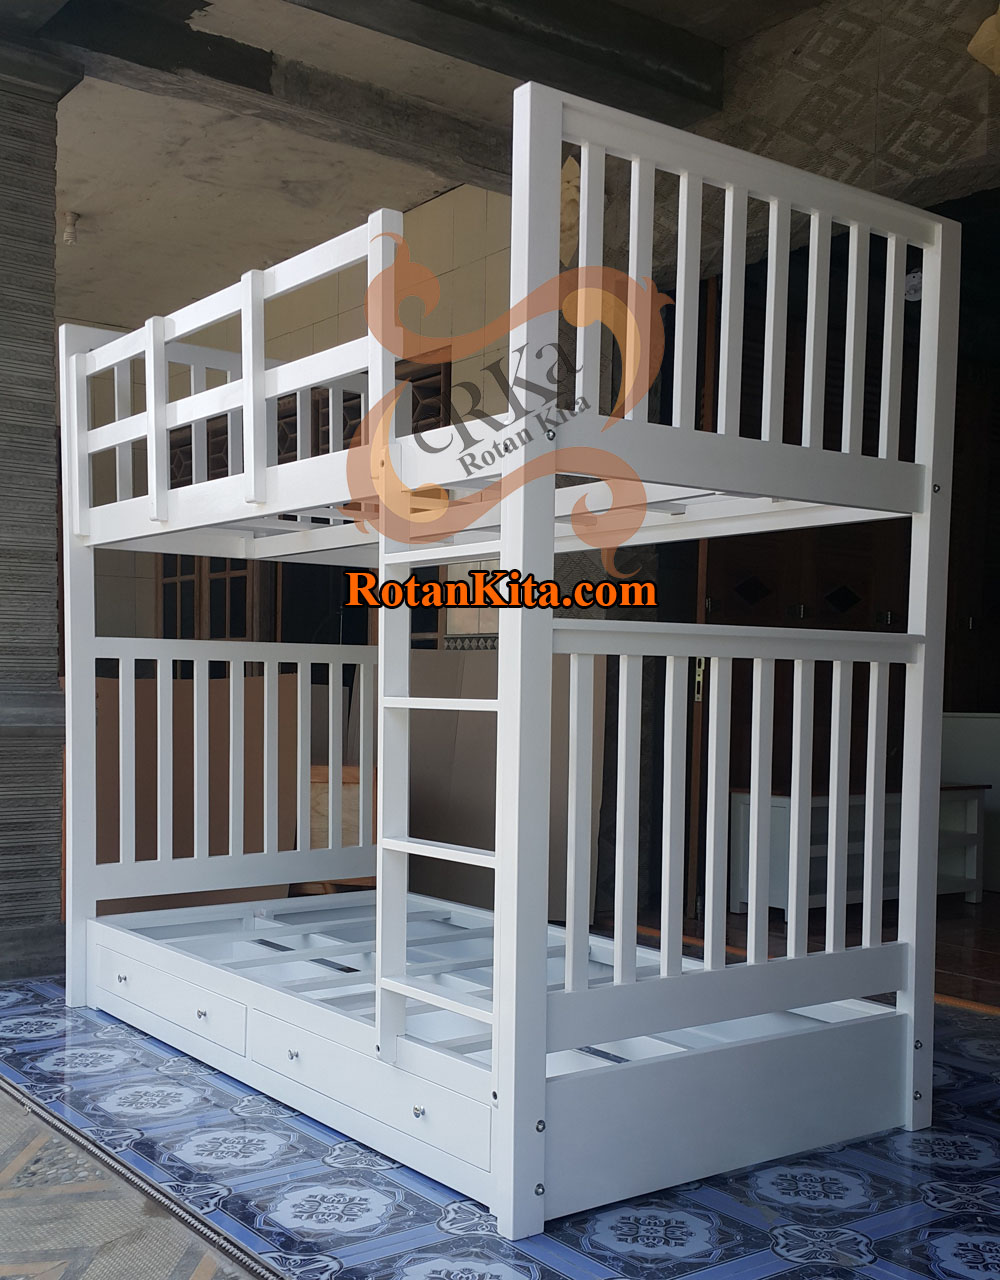 BED28 a Bed | Code: BED28